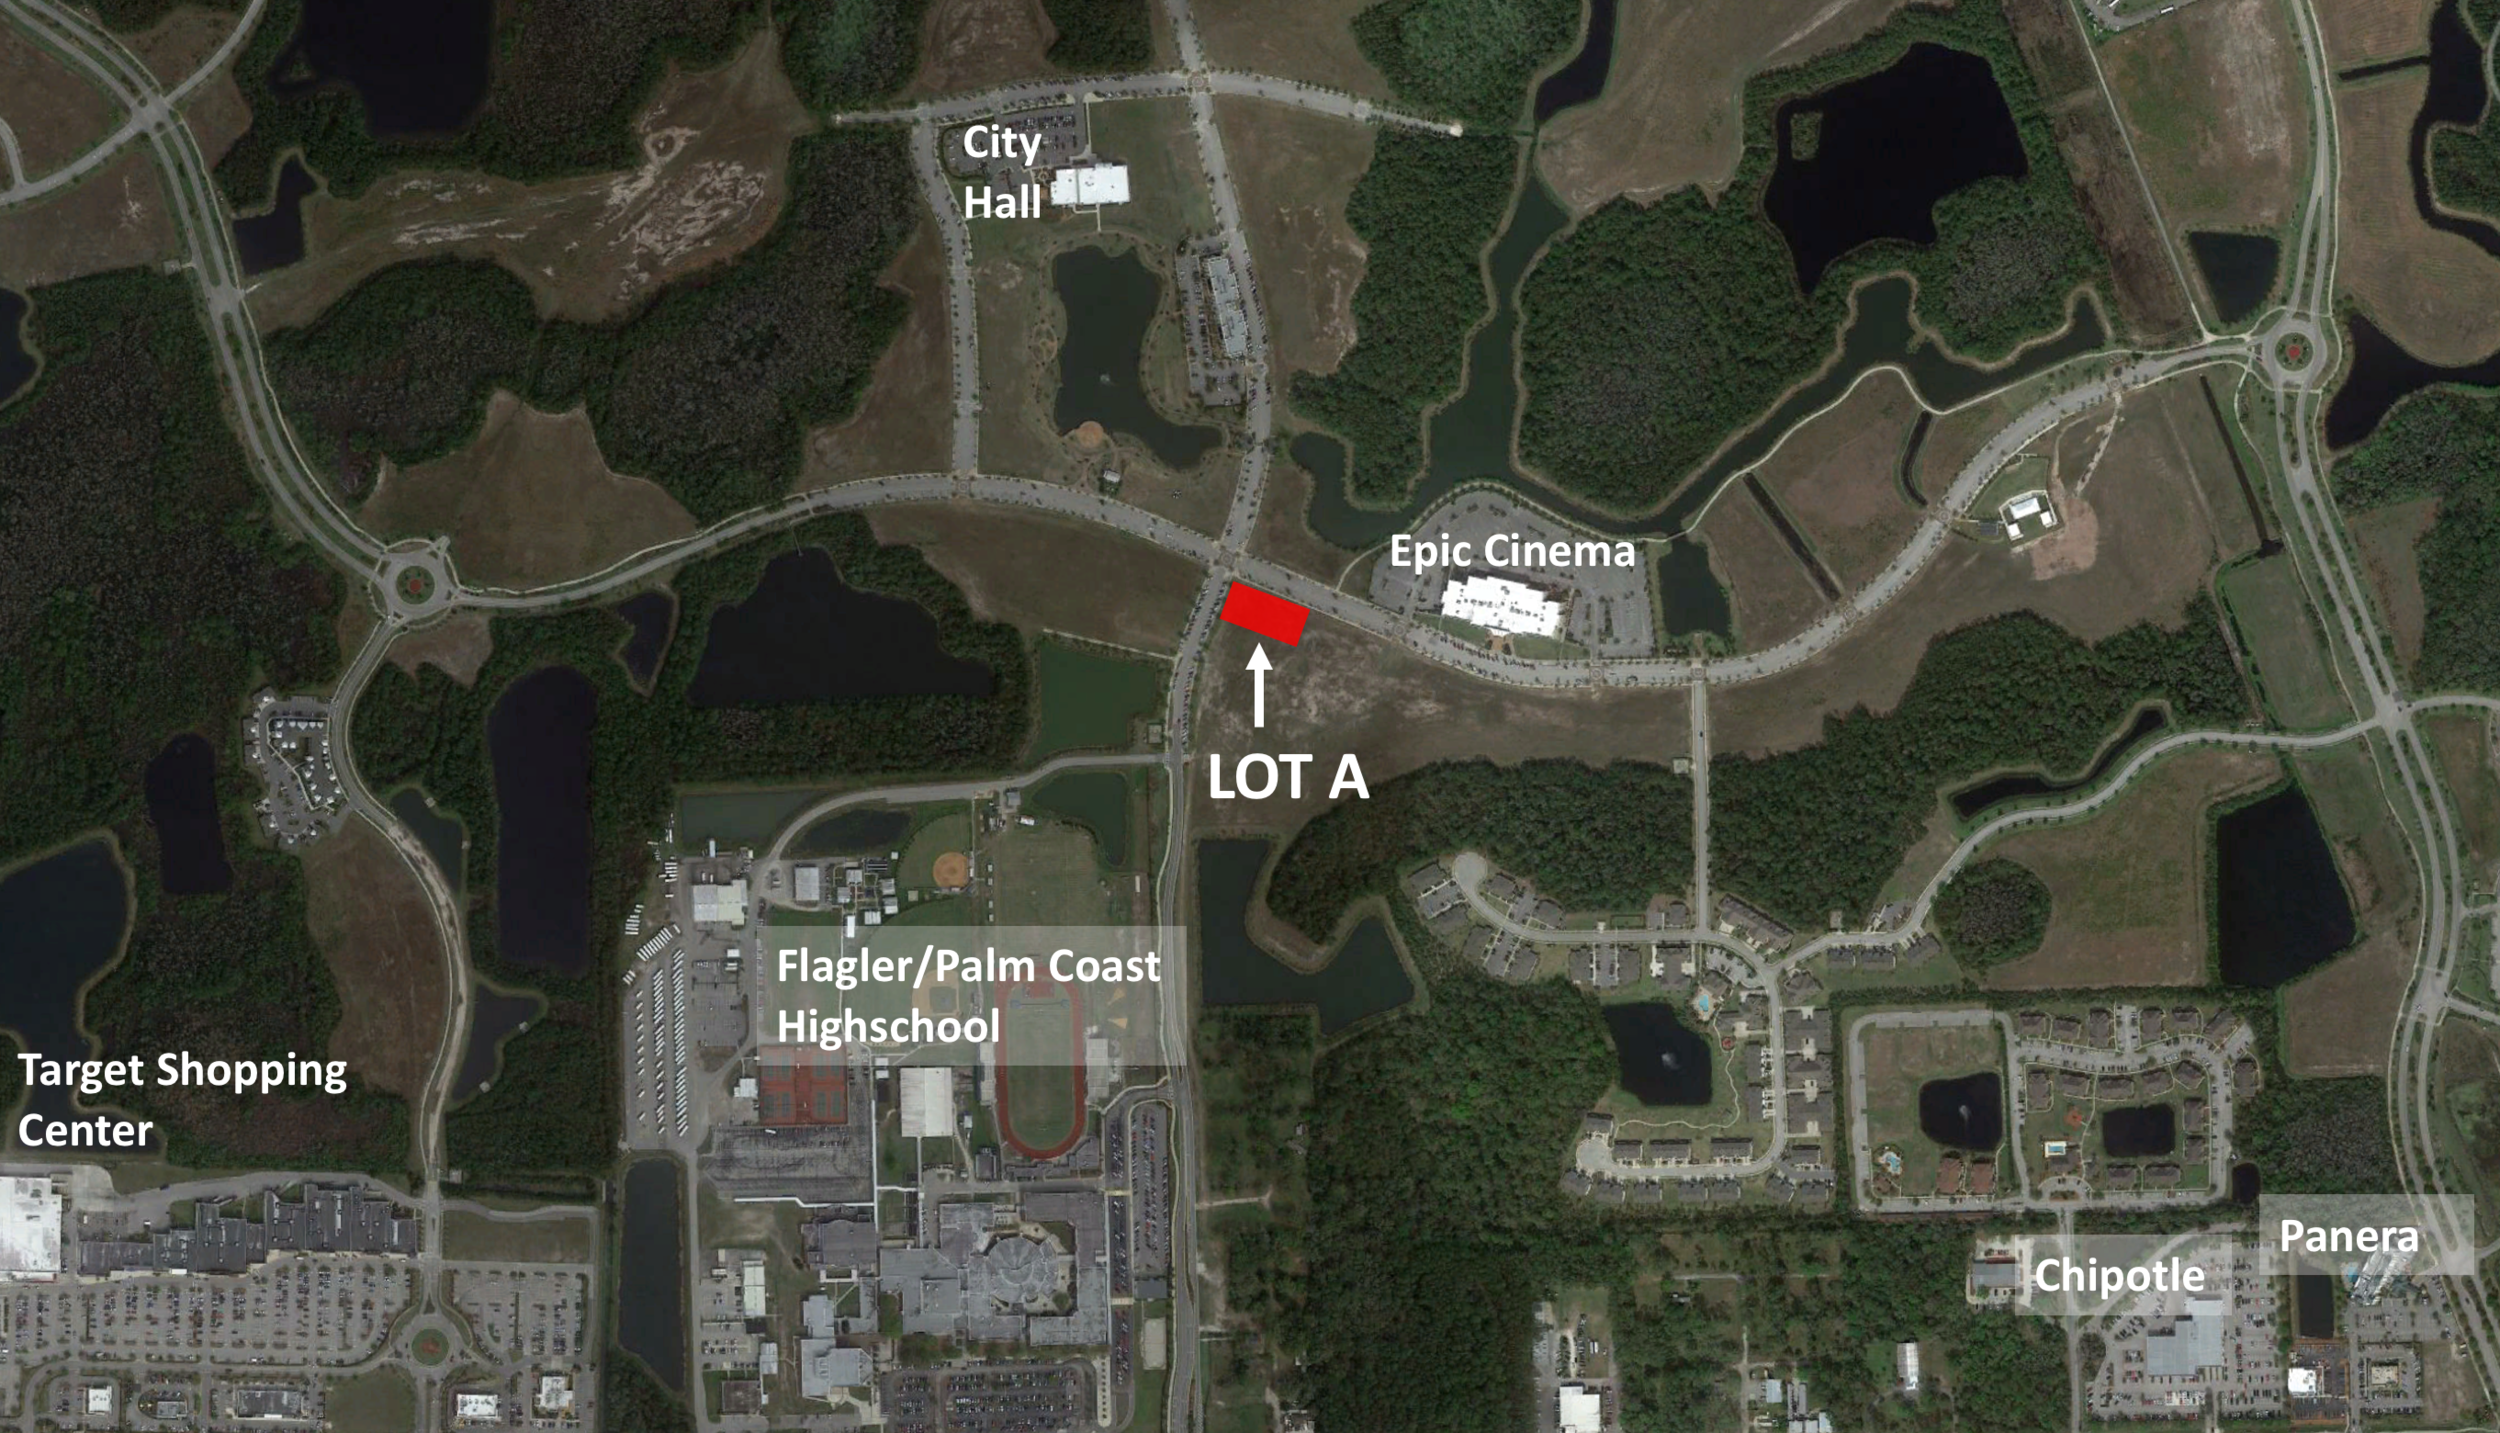 Lot A (Phase 2) - Size: 2.9+/- Net AcresZoning: Commercial Price: $900,000-Commercial corner available in the heart of Town Center.-86 unit multi-family development planned on adjacent parcel-Over 2,400 students enrolled at neighboring Flagler Palm Coast High School